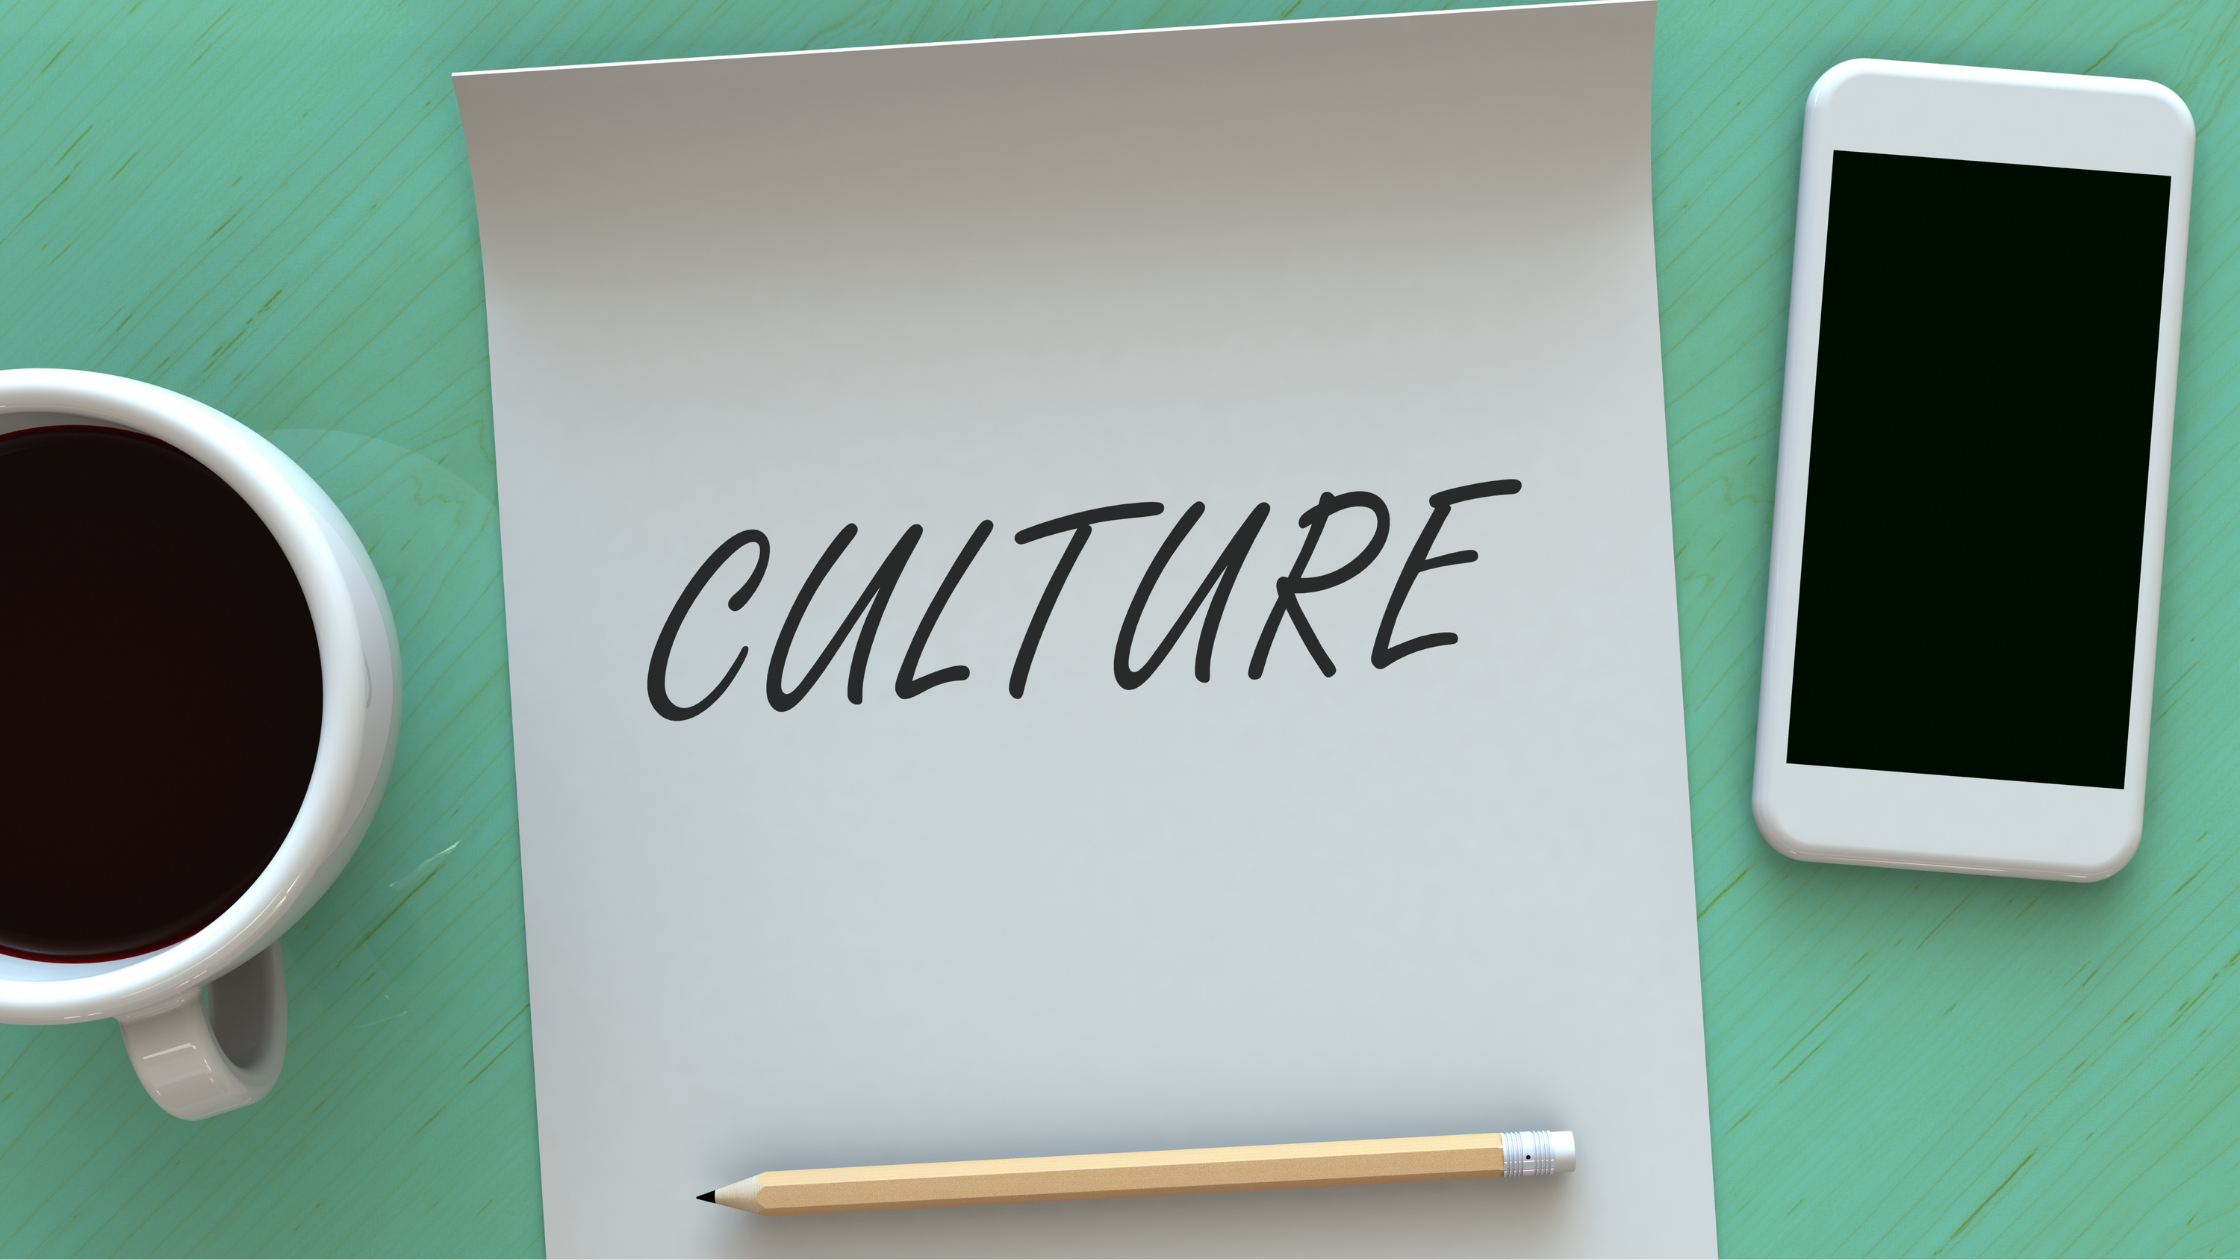 assess culture fit while hiring remotely